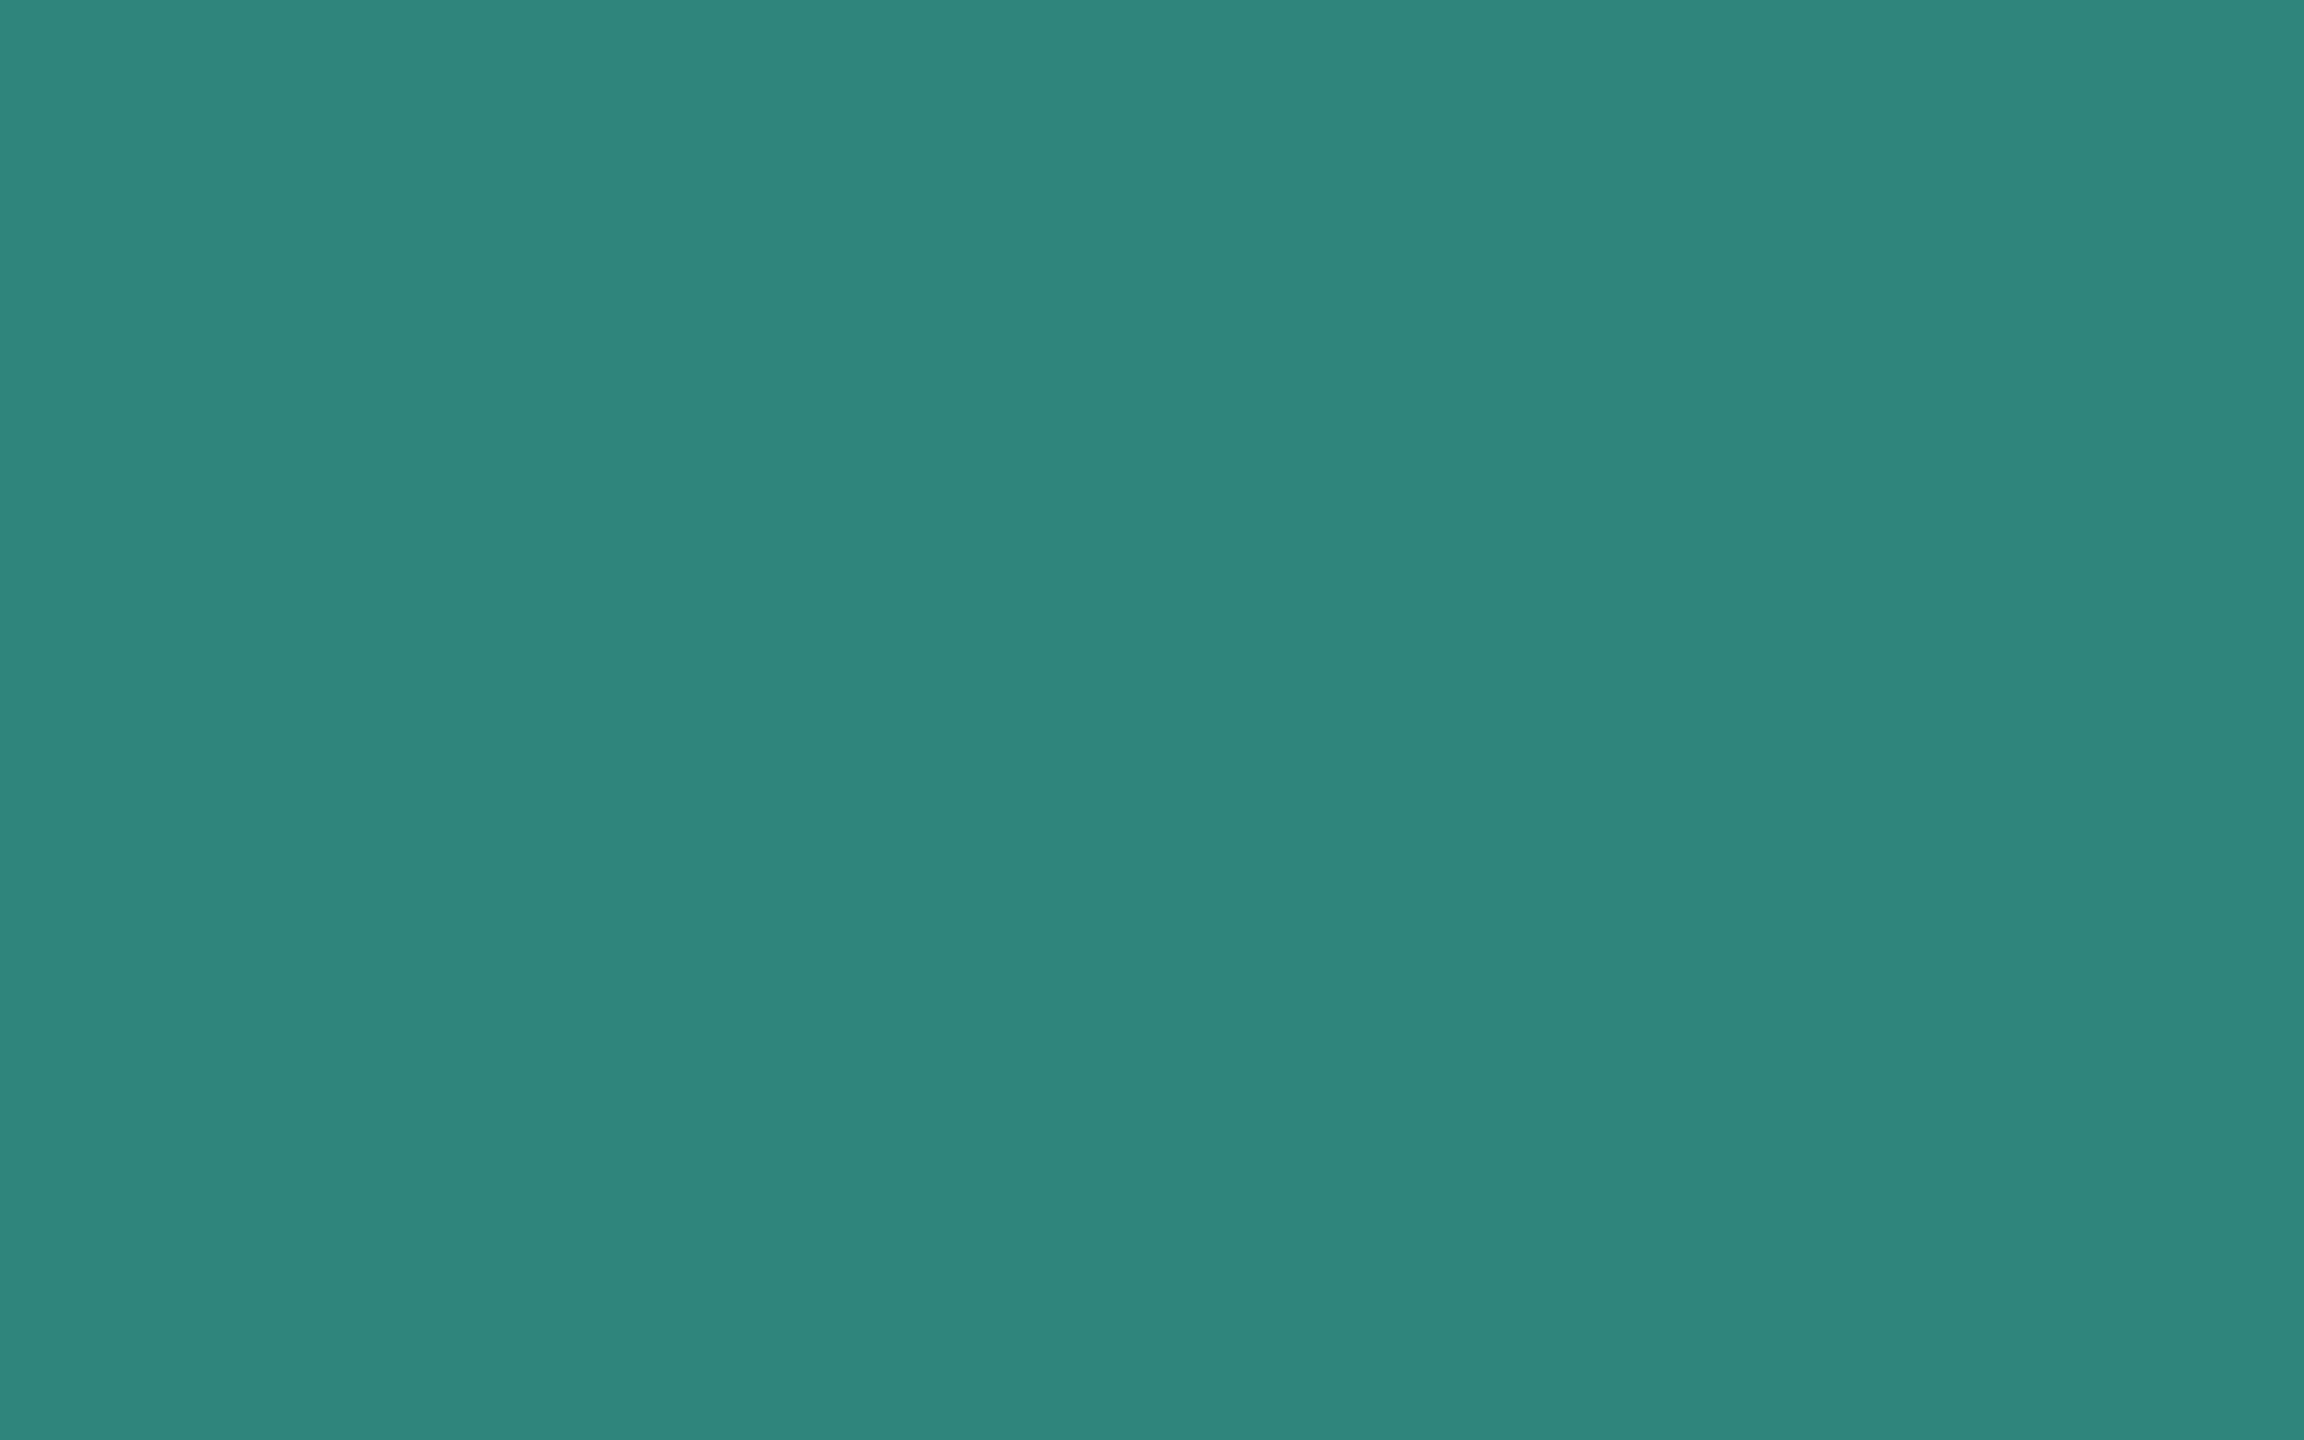 2304x1440 Celadon Green Solid Color Background